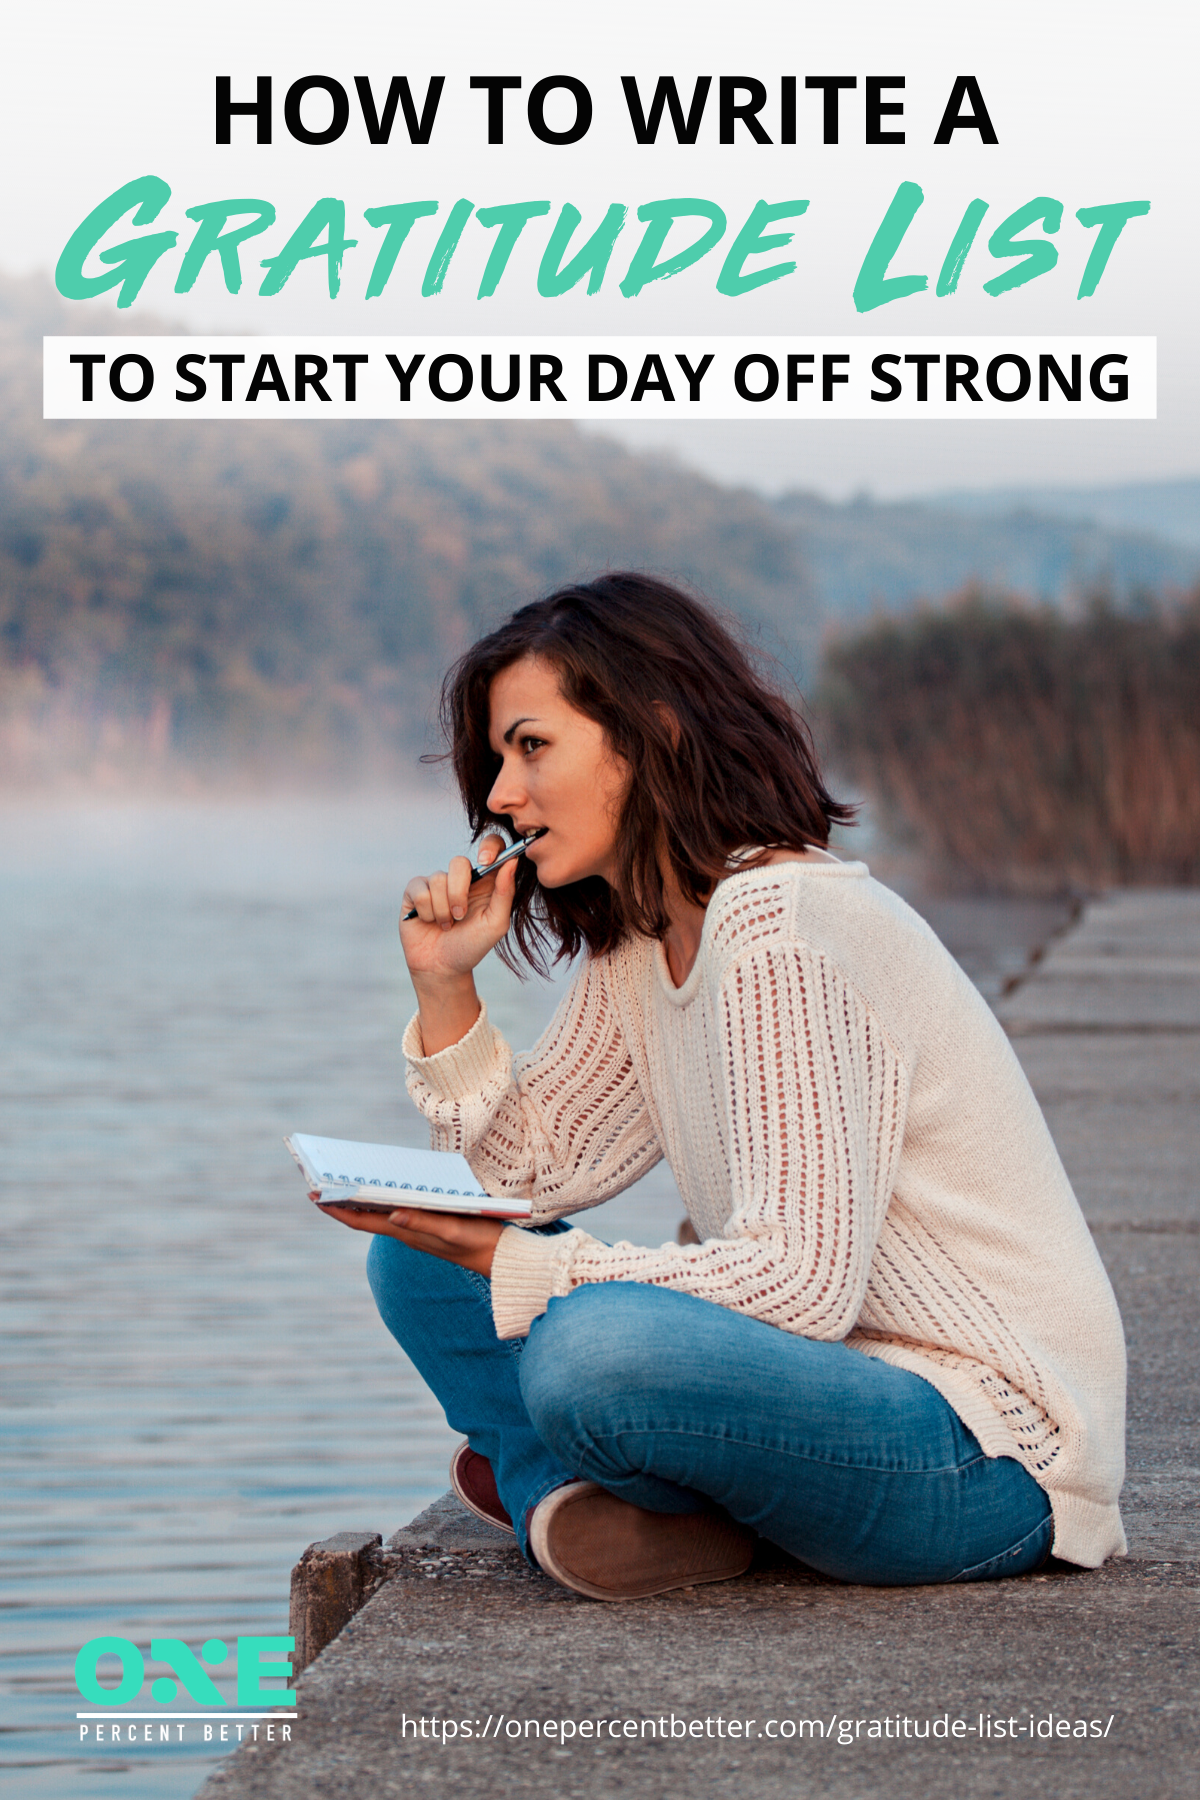 How To Write A Gratitude List To Start Your Day Off Strong https://onepercentbetter.com/gratitude-list-ideas/